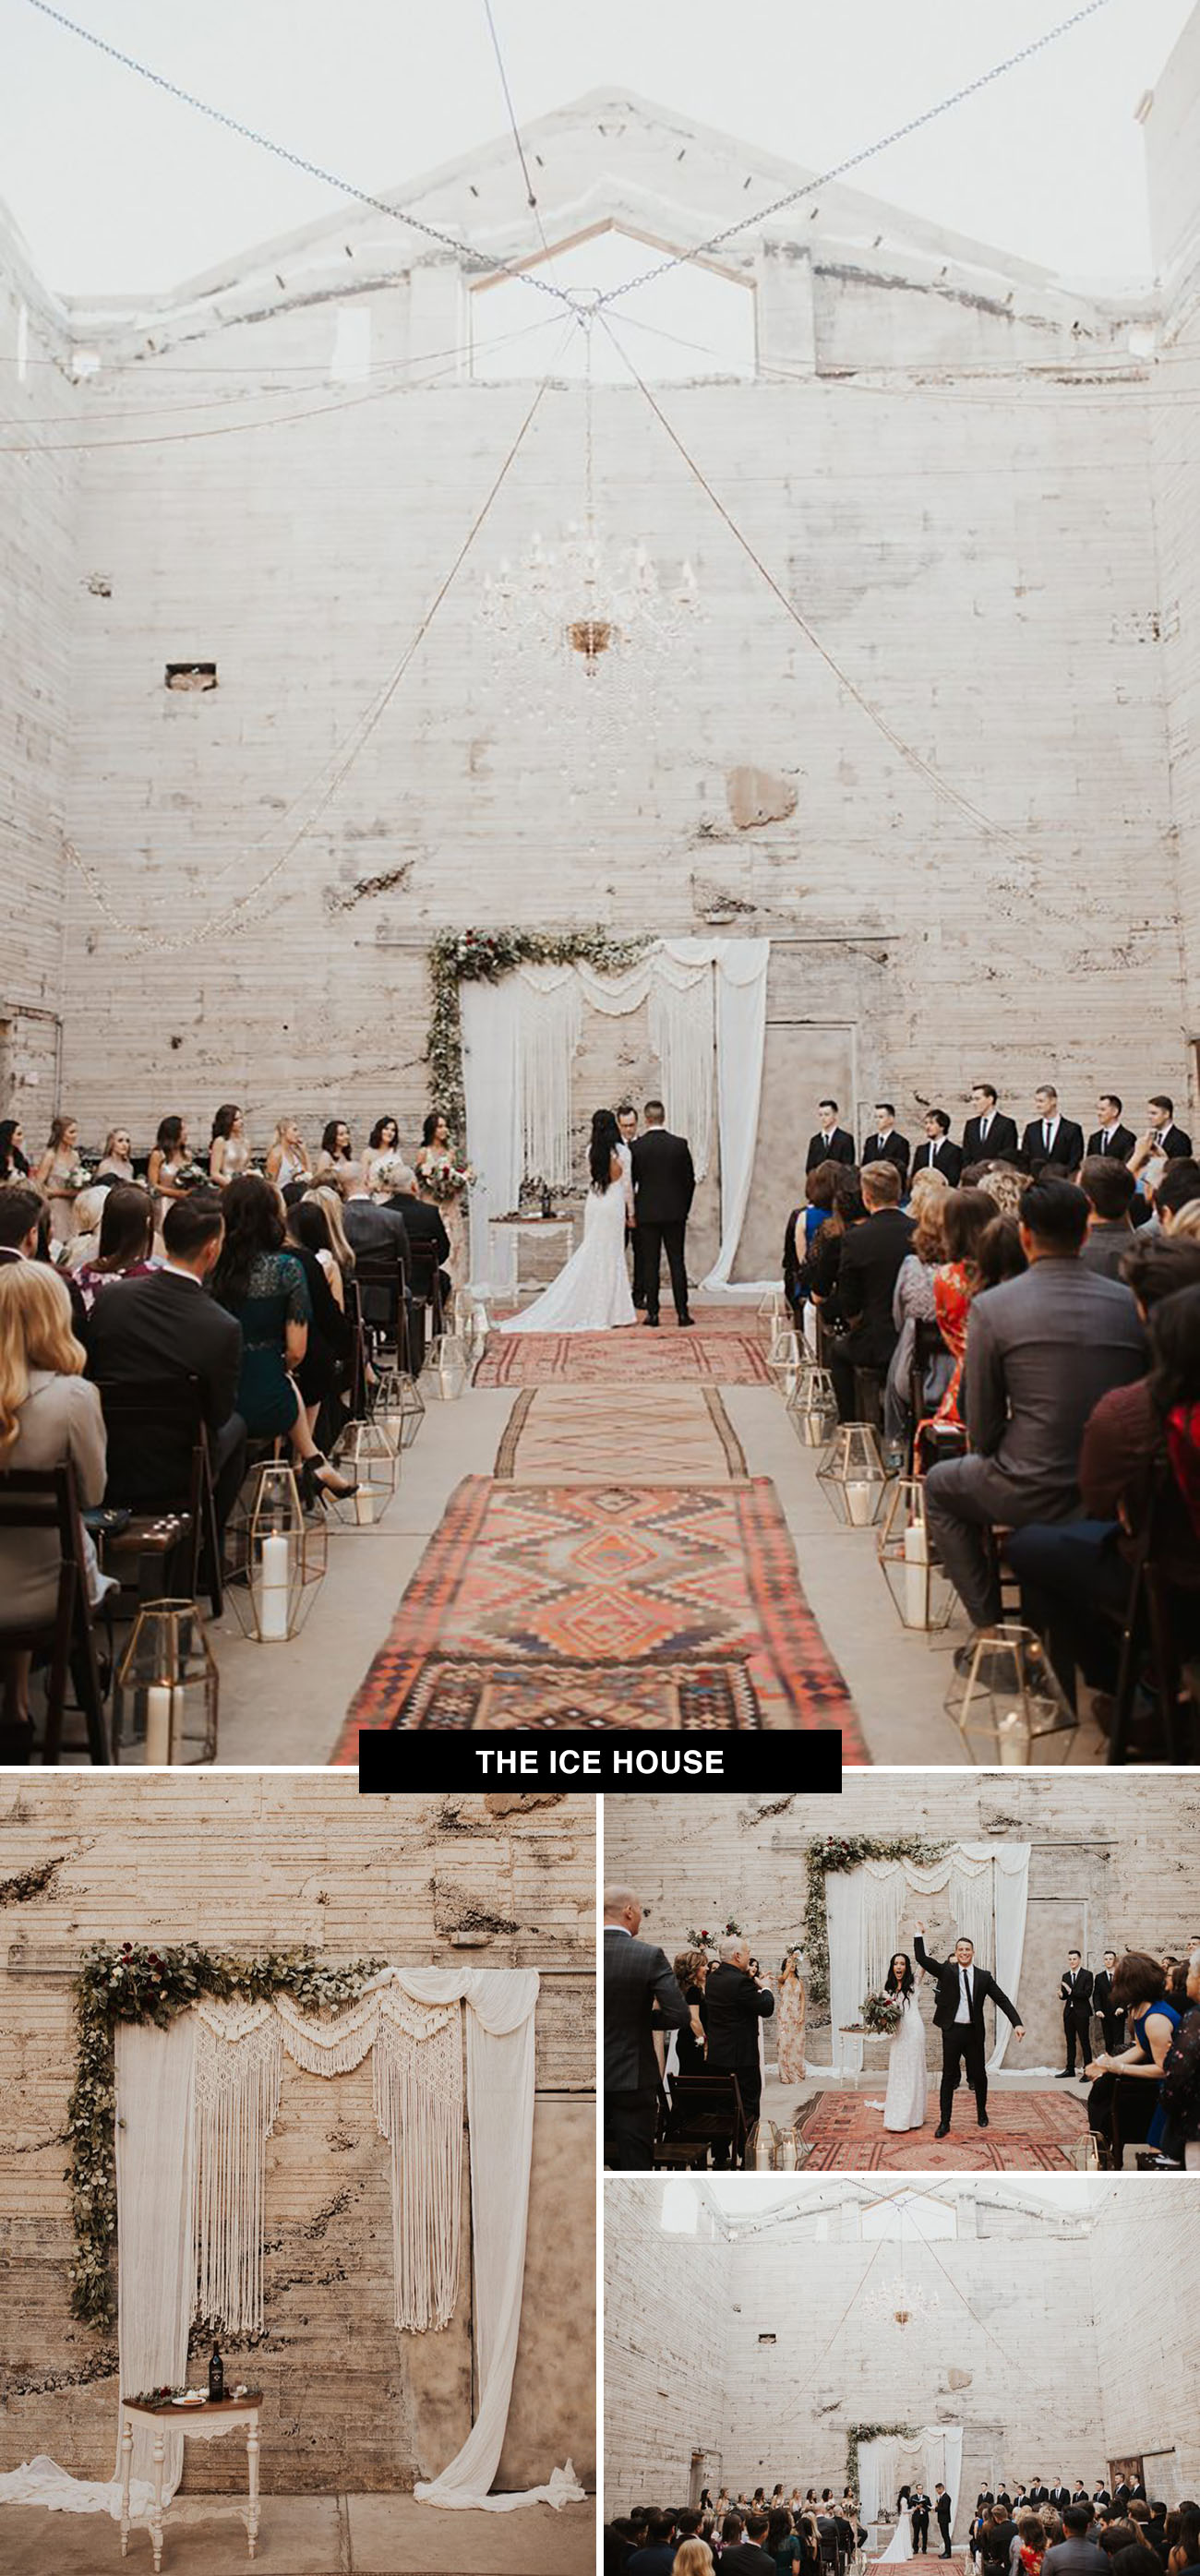 The Ice House wedding venue in Phoenix, Arizona is a cool place to get married